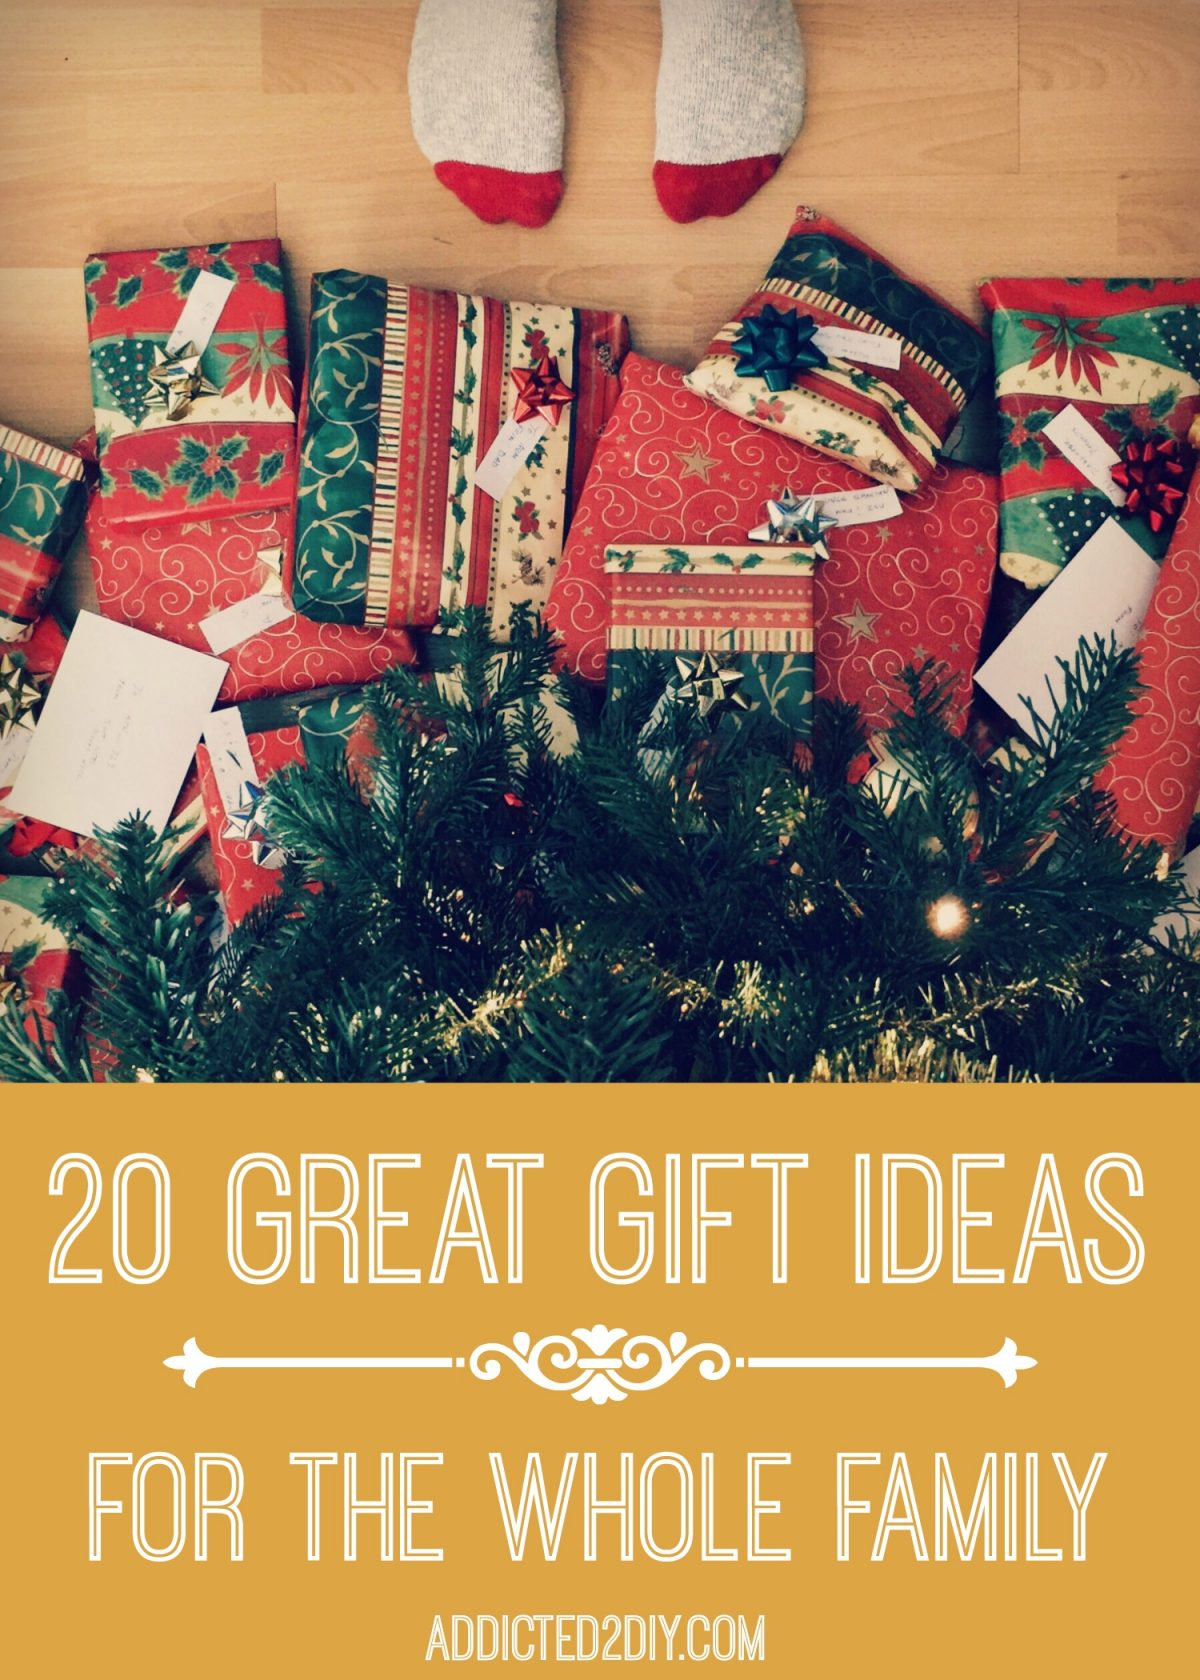 20 Great Gift Ideas for the Whole Family - Addicted 2 DIY